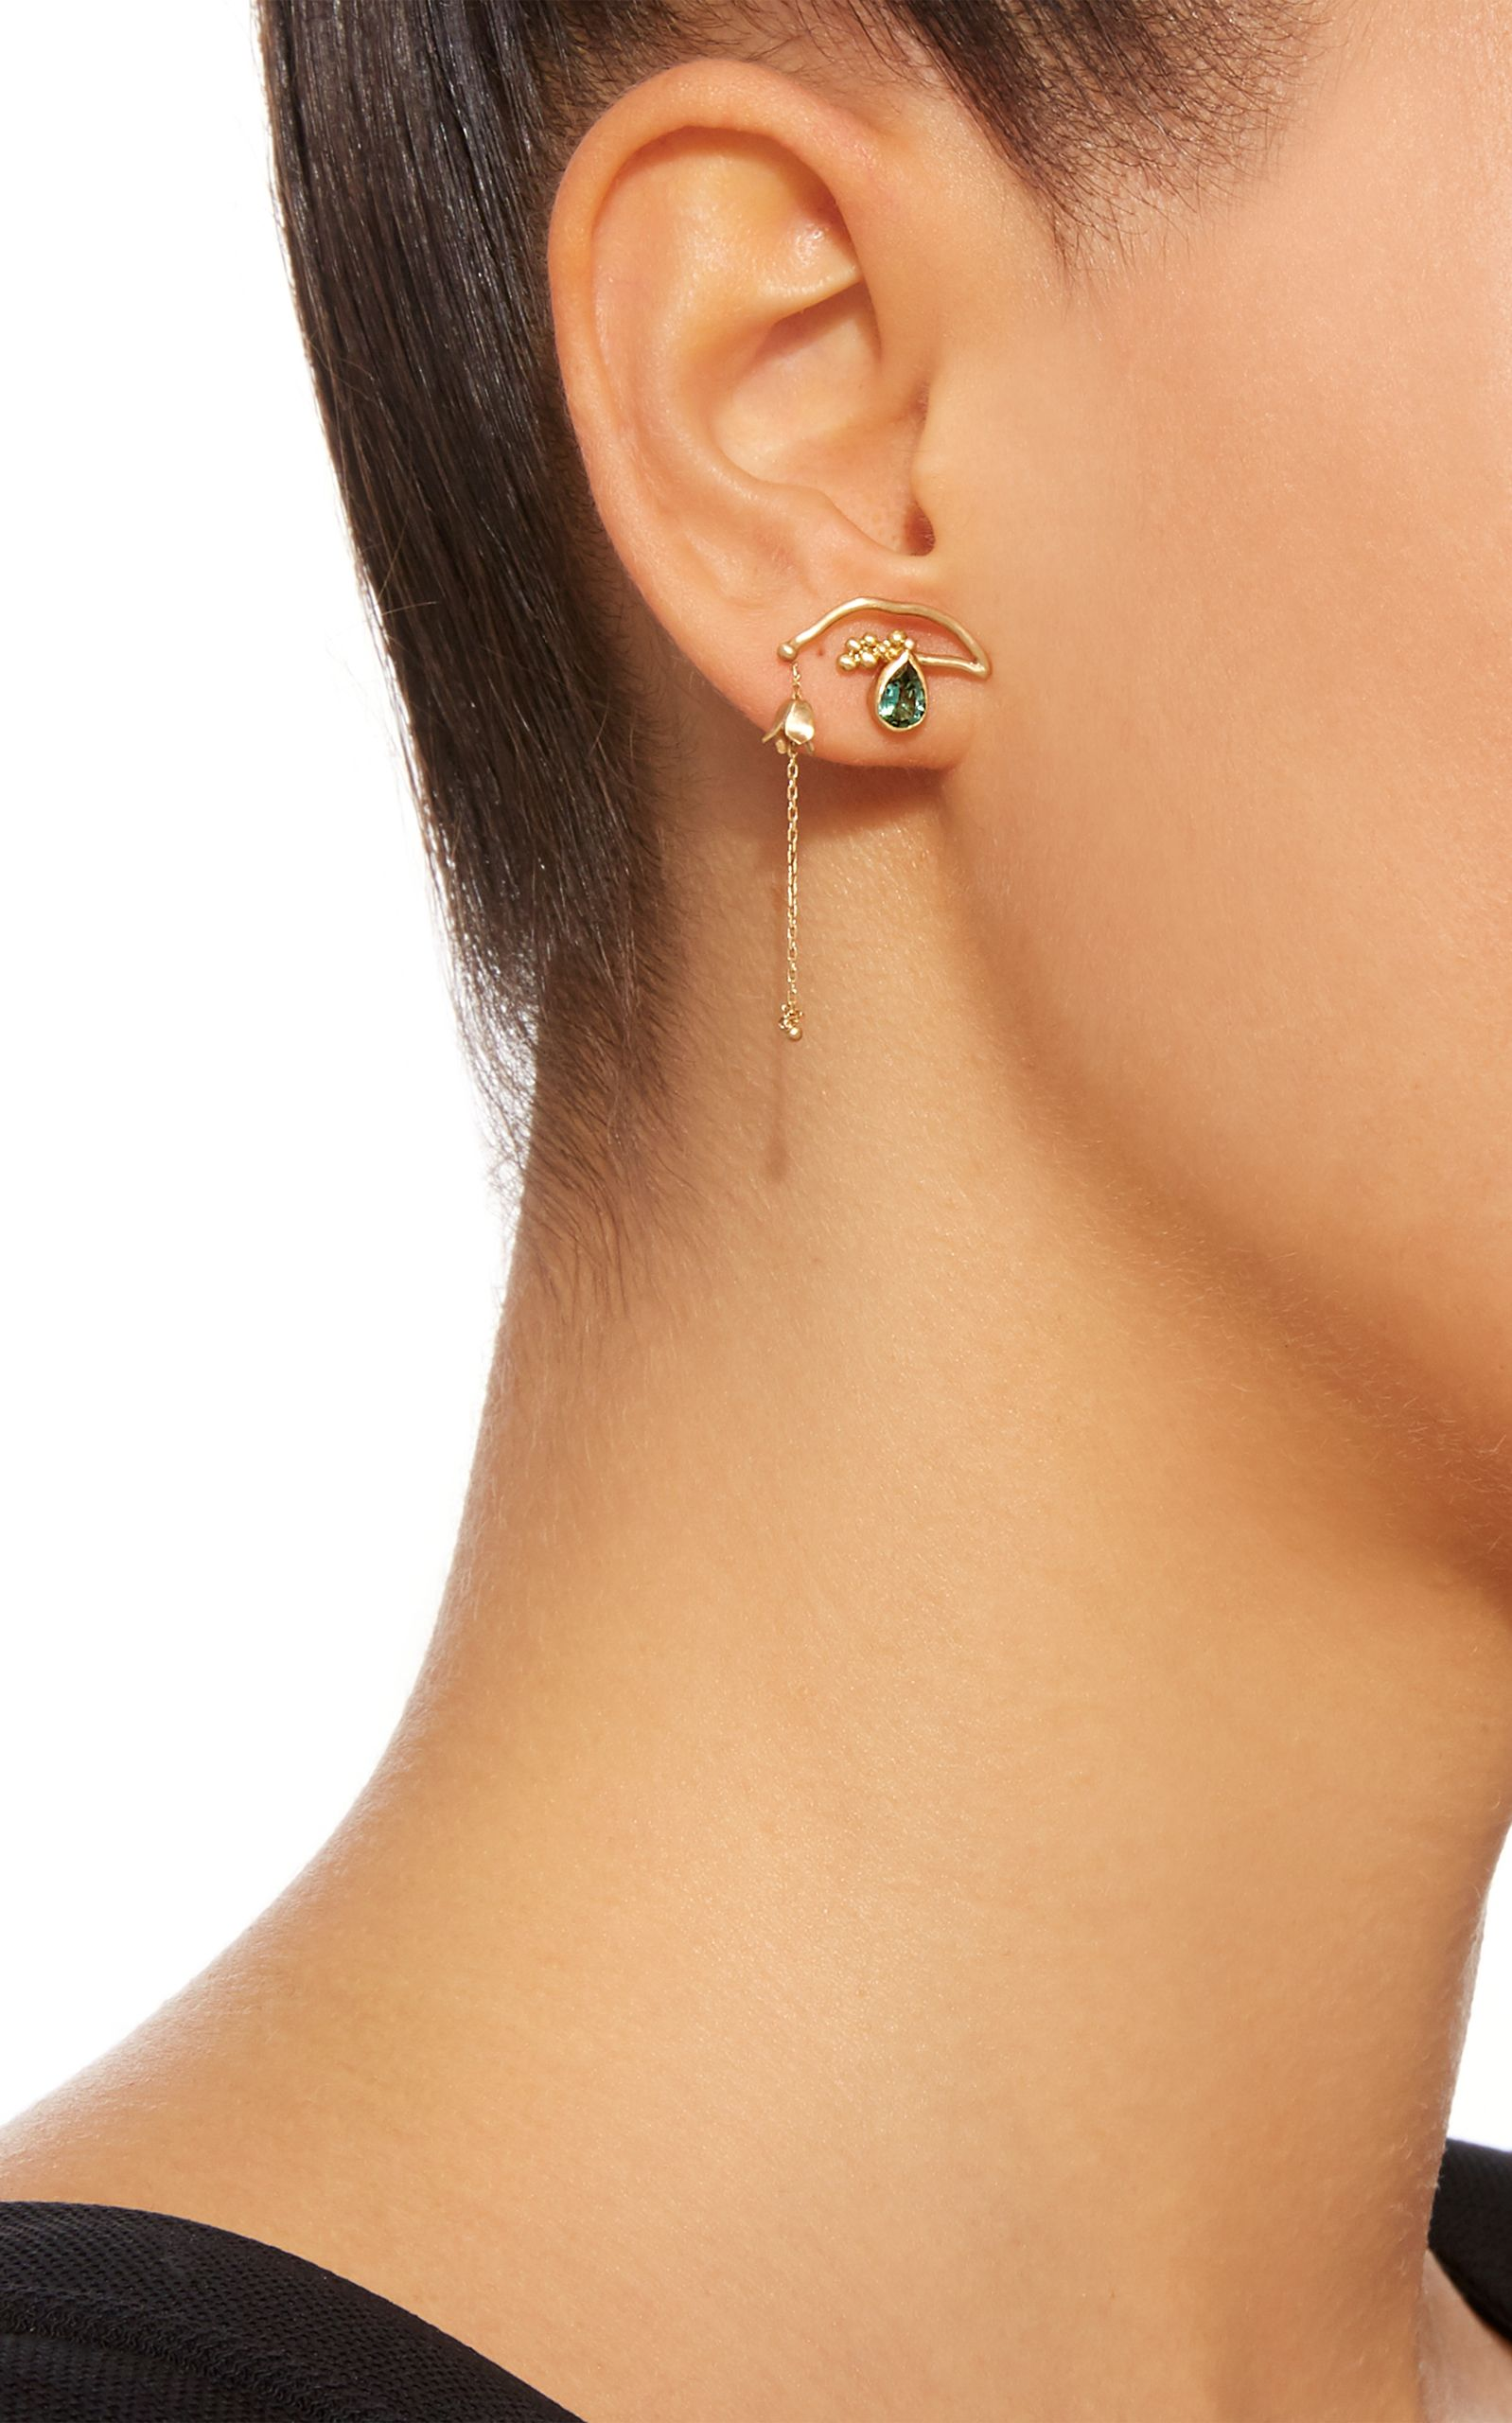 screen drip gold full drop in the earring single josina earrings view room y finejewelry product jewellery